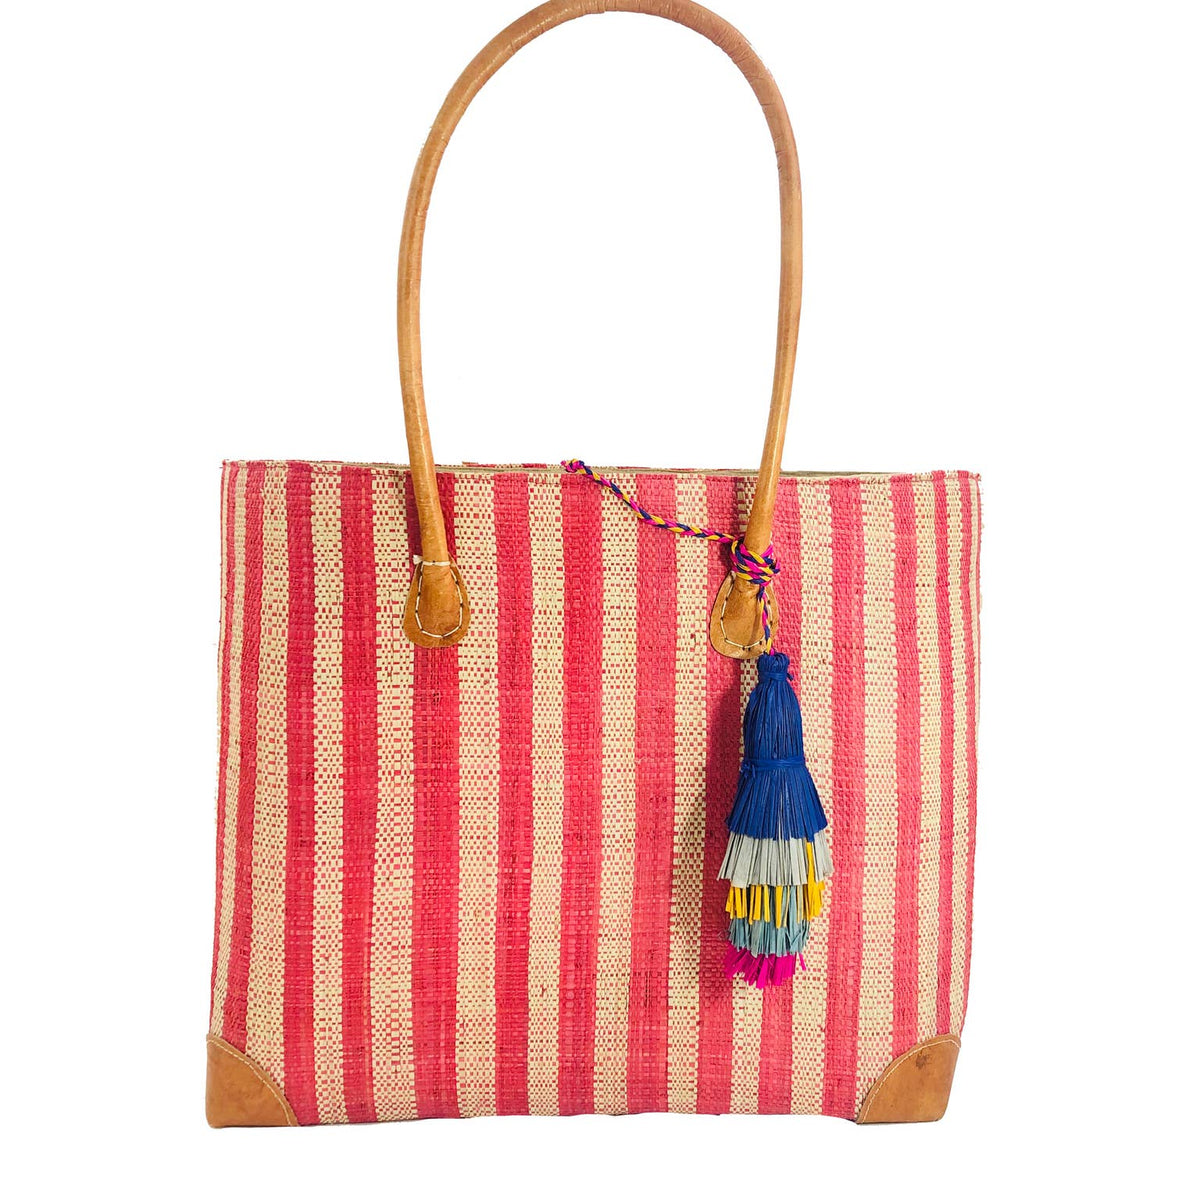 Madagascar Shopper Bag & Tote